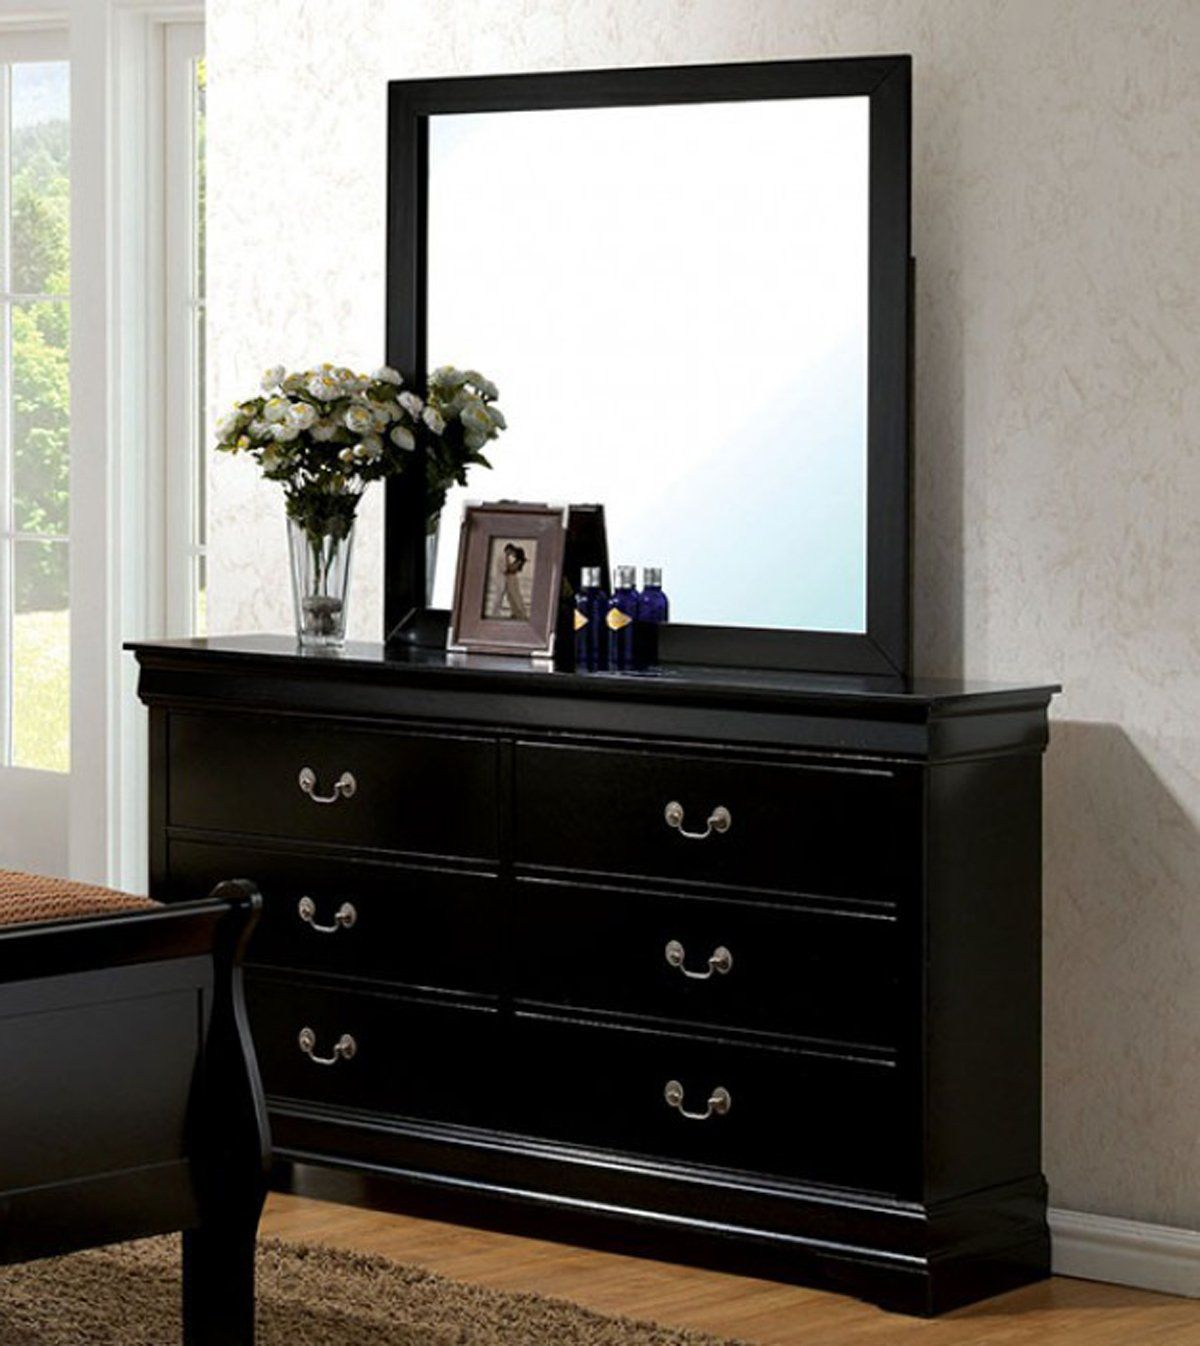 Louis Philippe Iii Cm7866bk D Contemporary Black Dresser Mirror